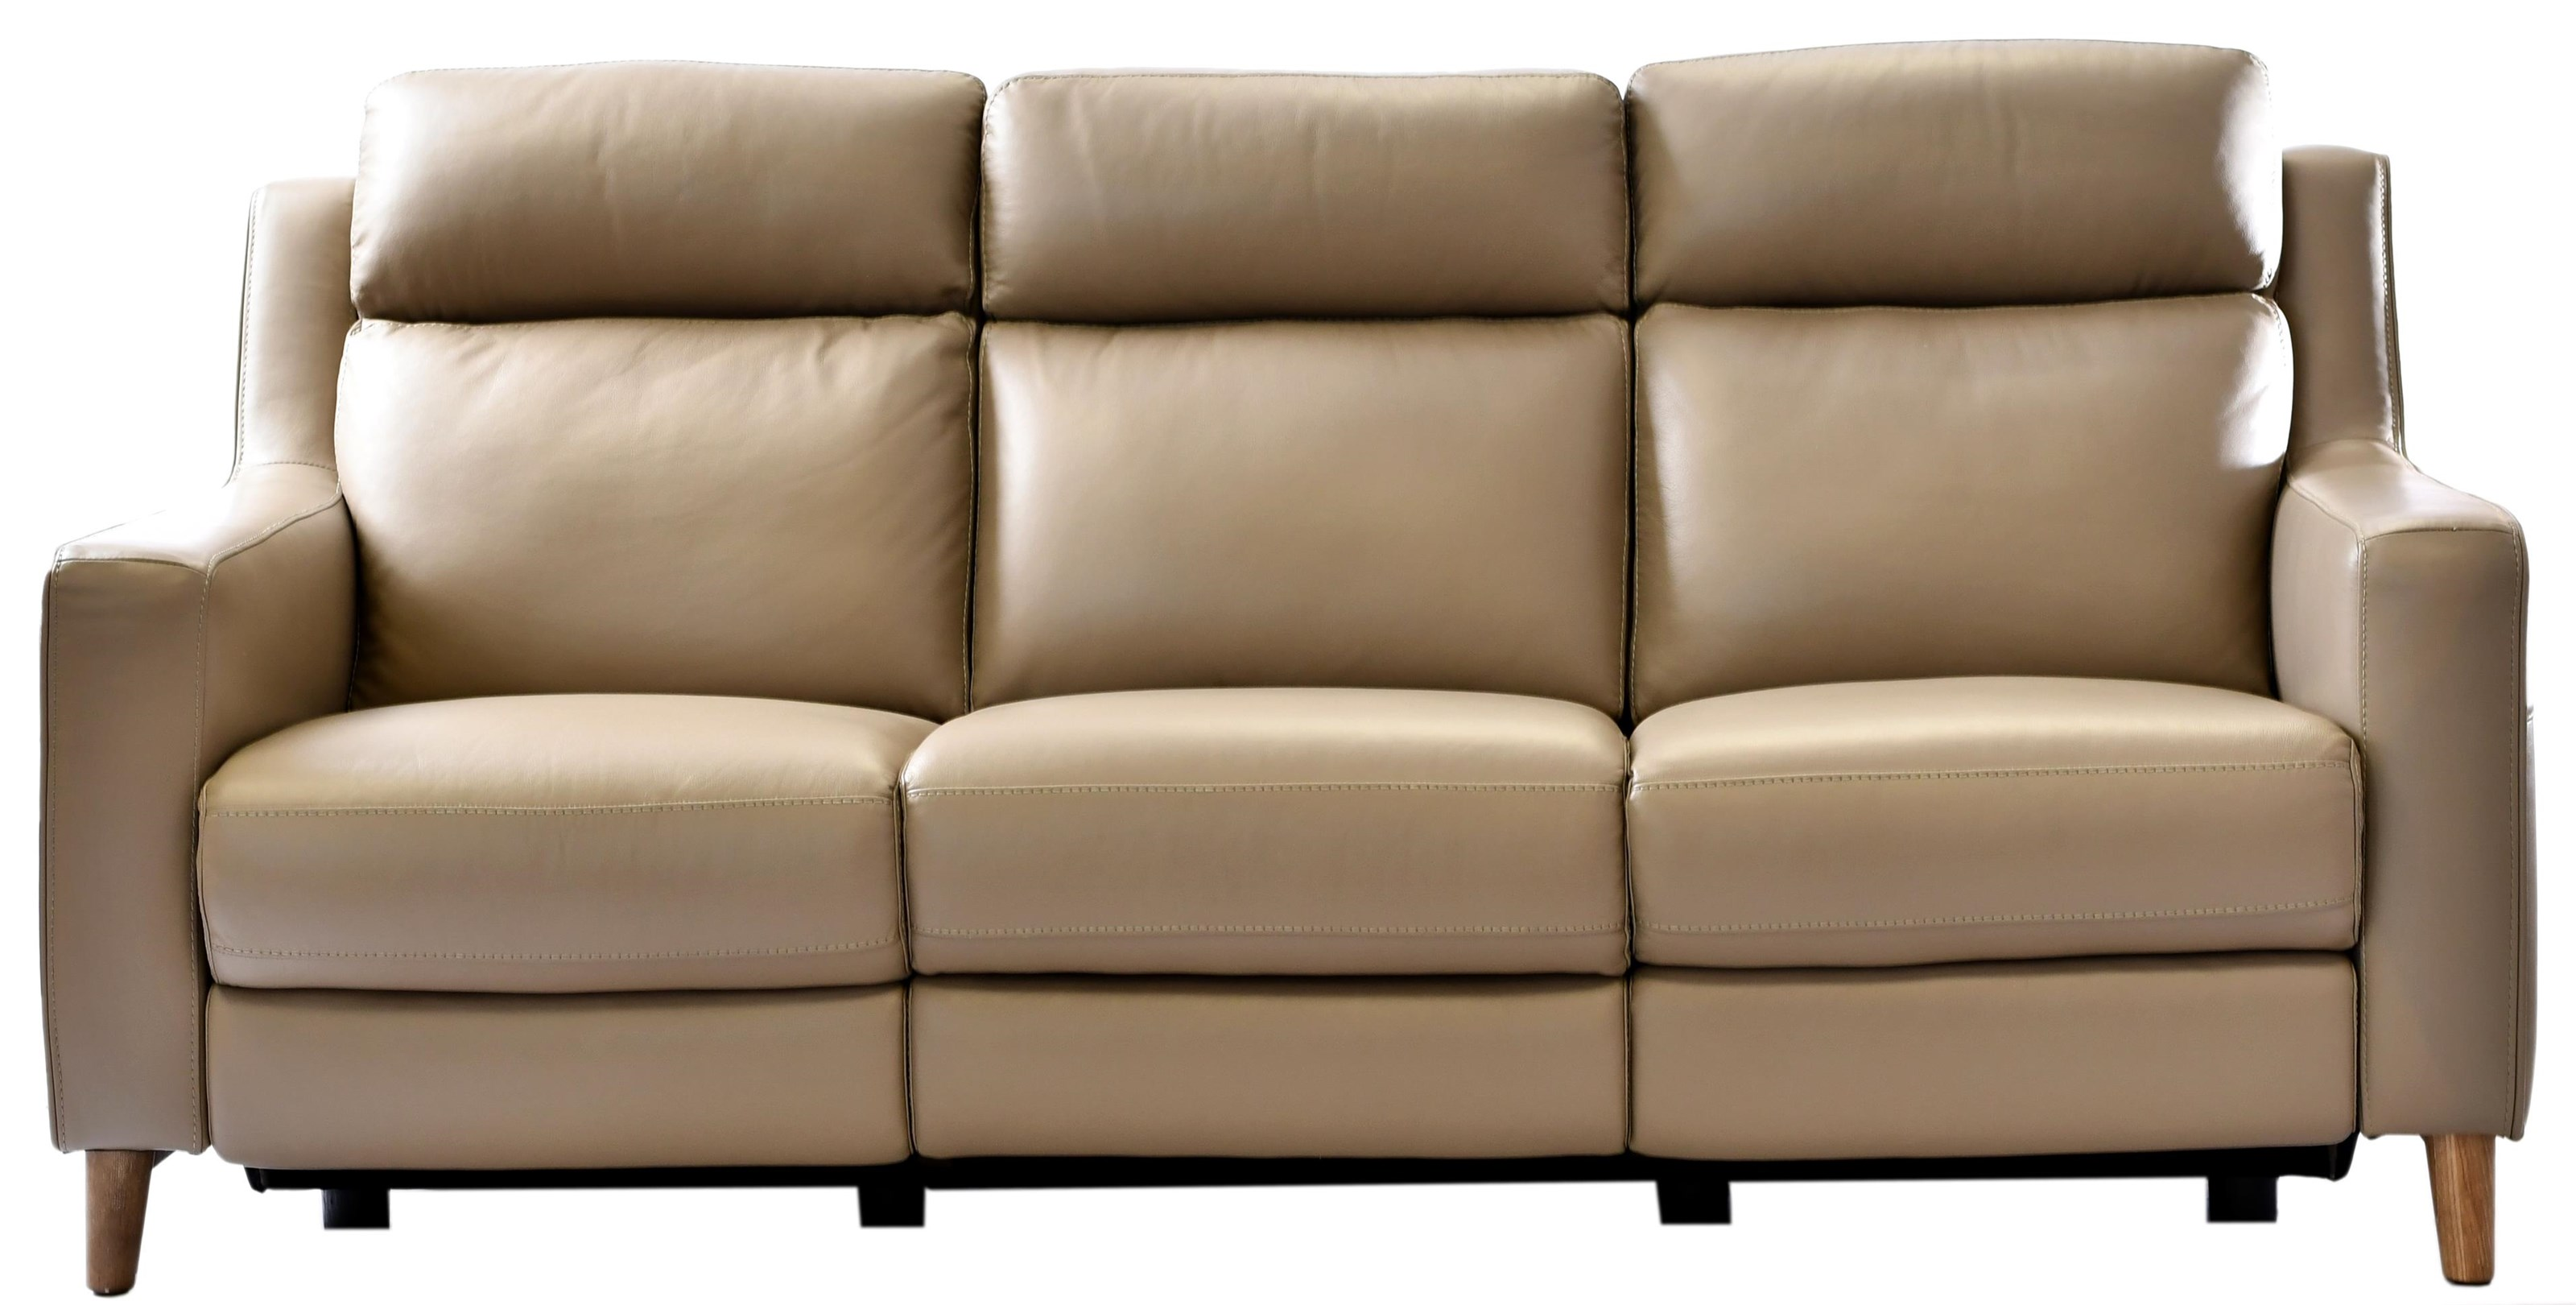 32097 Power Motion Sofa Leather Power Motion Sofa at Bennett's Furniture and Mattresses